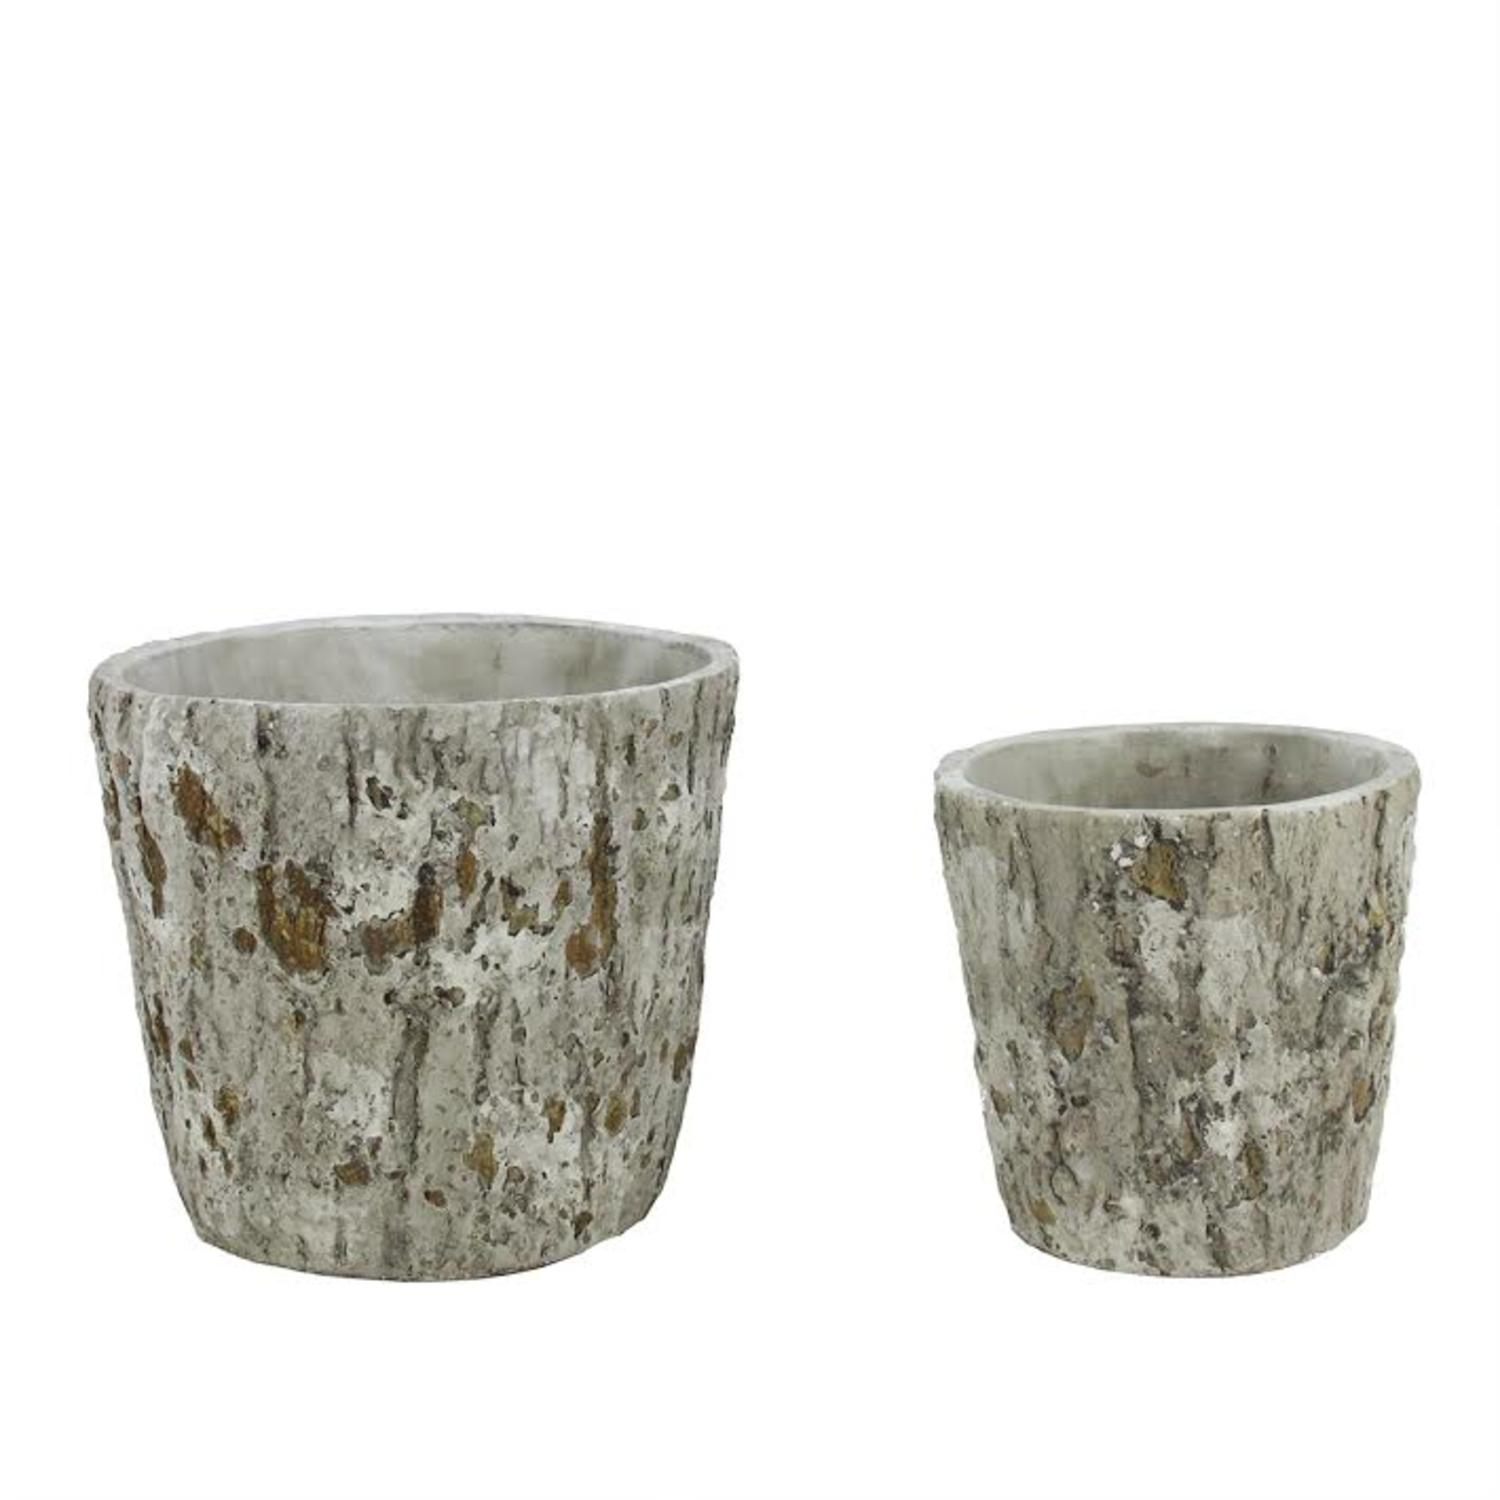 "Set of 2 Brown and Gray Tree Bark Inspired Millcreek Cachepot Flower Planters 7.25"" by Cachepots"